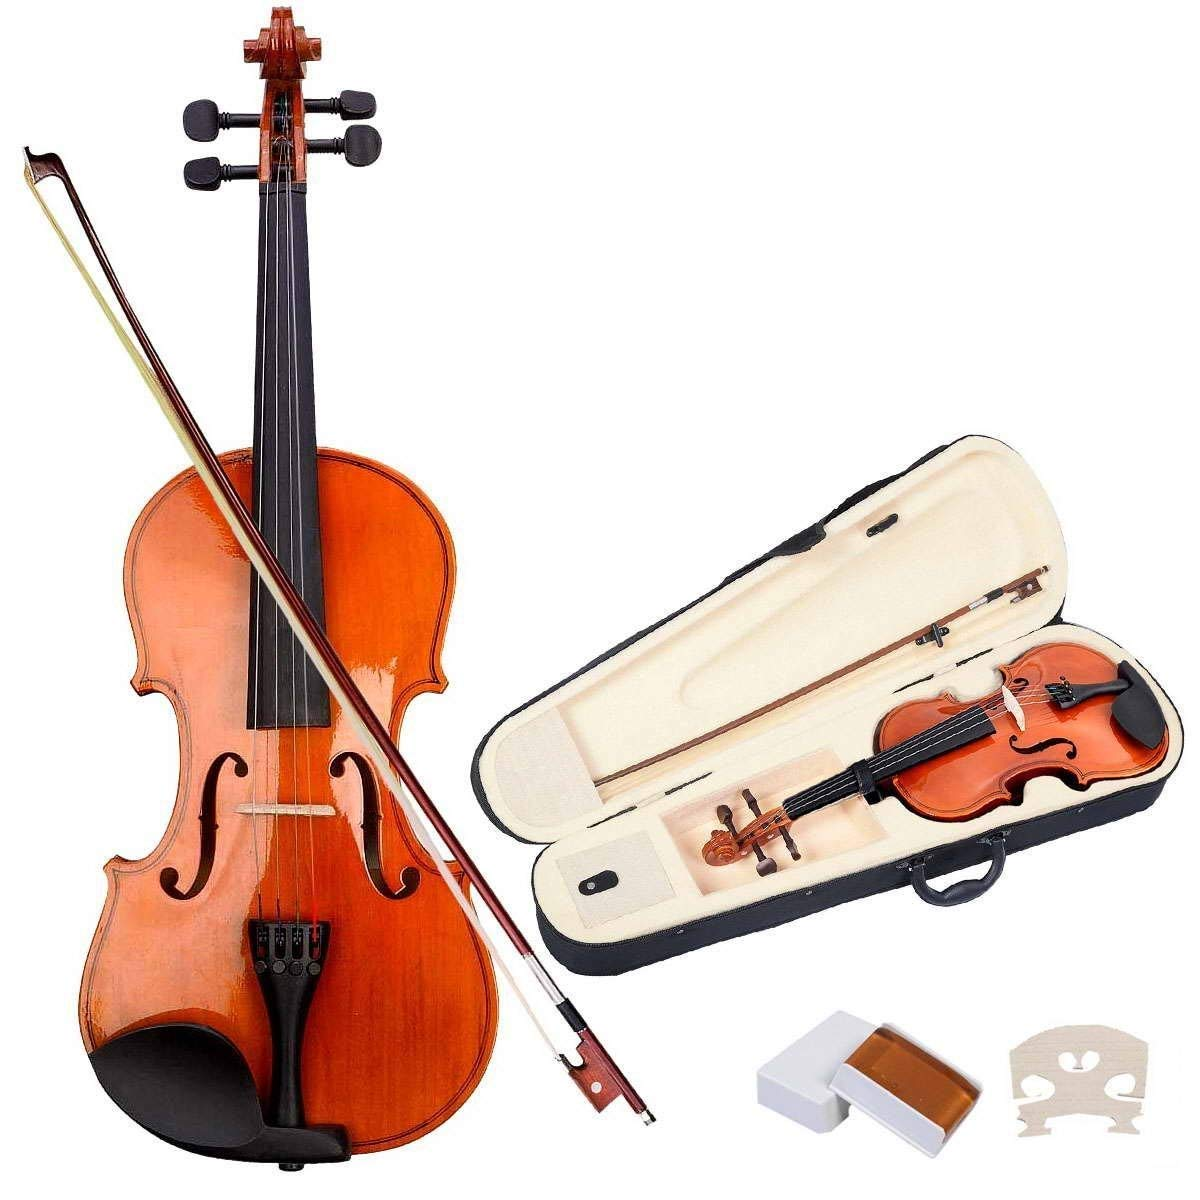 Goplus 4/4 Full Size Acoustic Violin Durable Natural Solid Wood Fiddle for Beginners and Students w/Case, Bow and Rosin (Burlywood) Superbuy